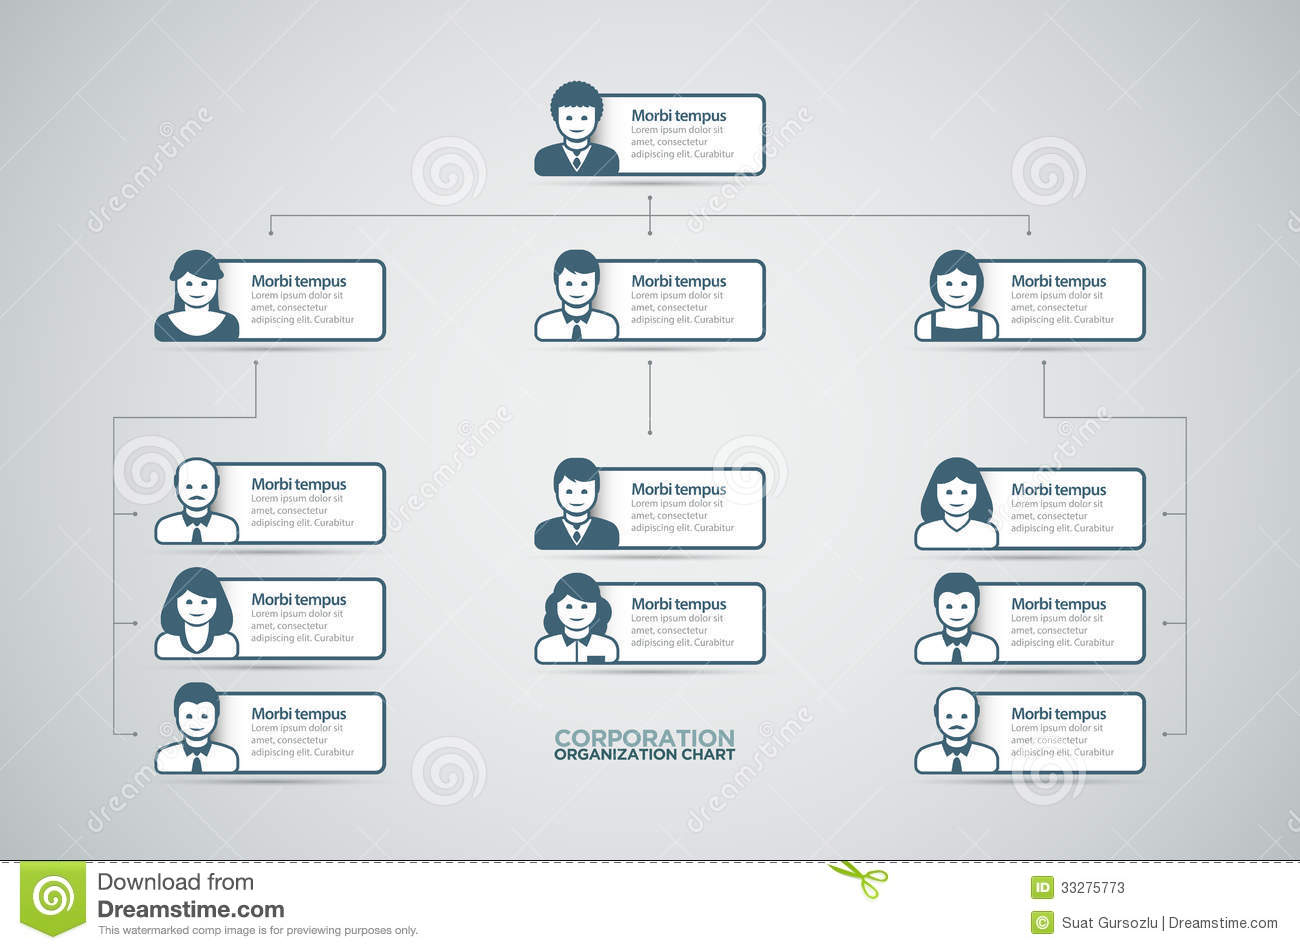 Easy organization chart template militaryalicious easy organization chart template accmission